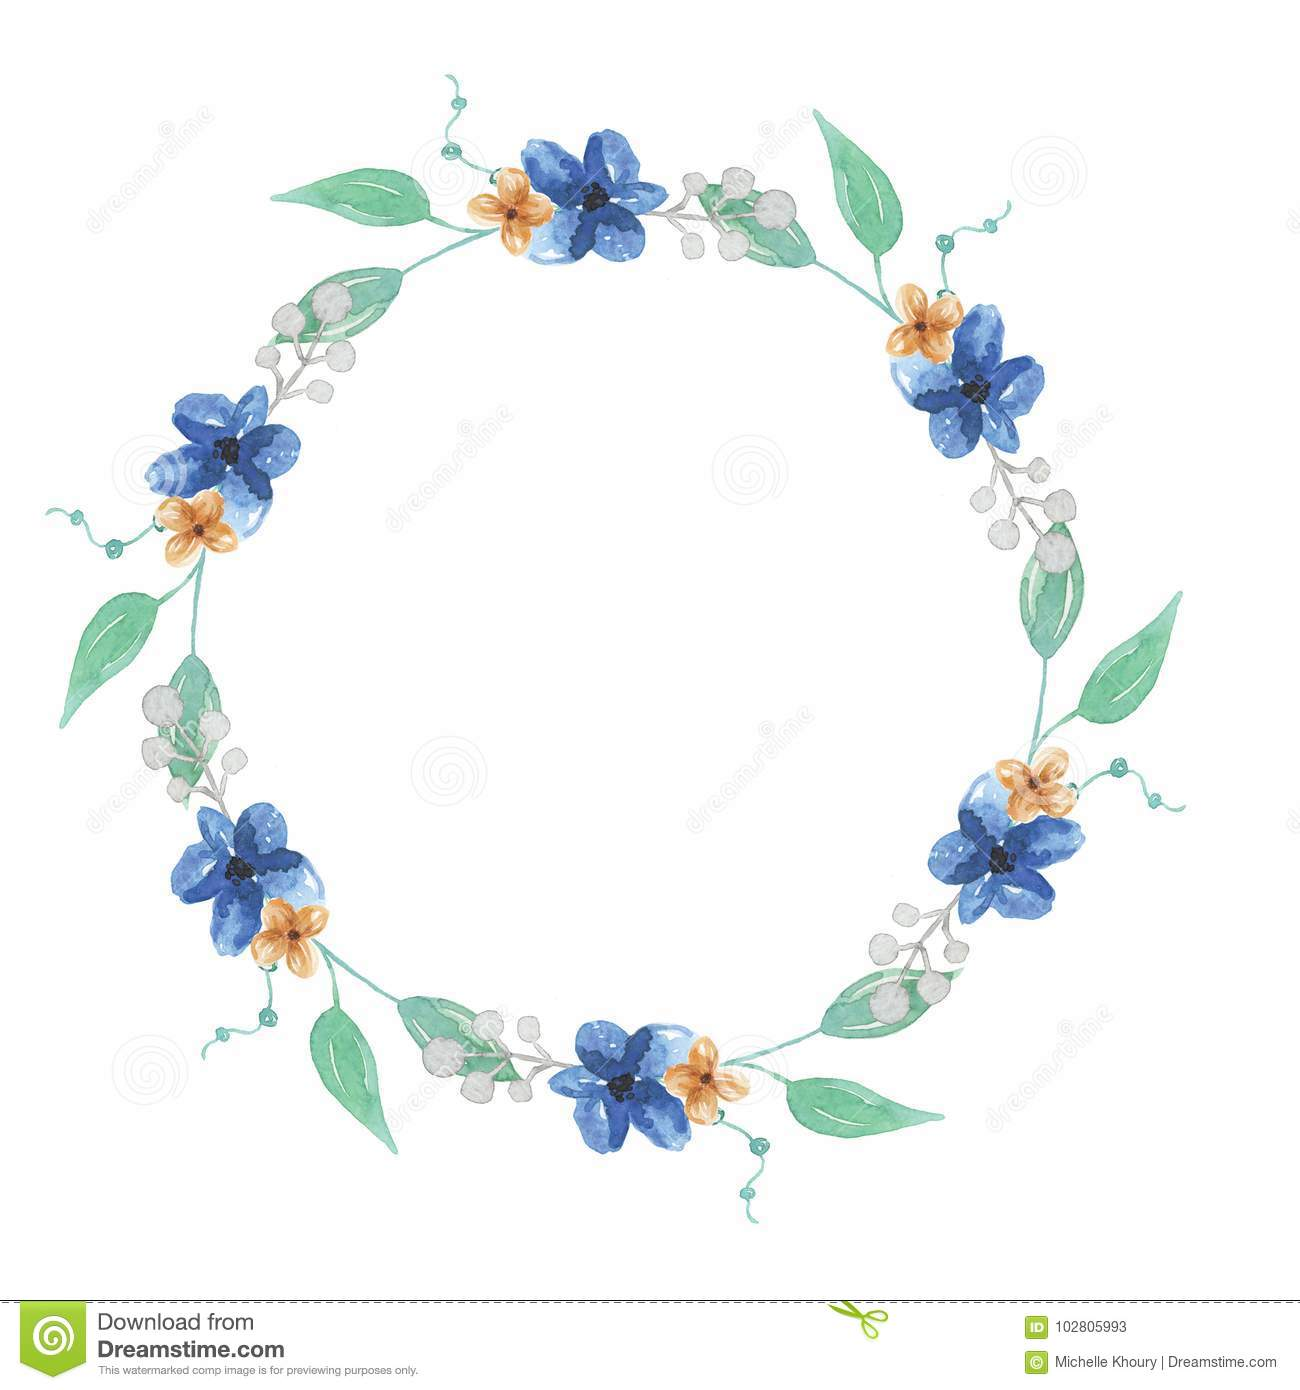 Watercolor floral leaves berries blue flowers wreath garland stock download watercolor floral leaves berries blue flowers wreath garland stock illustration illustration of cool izmirmasajfo